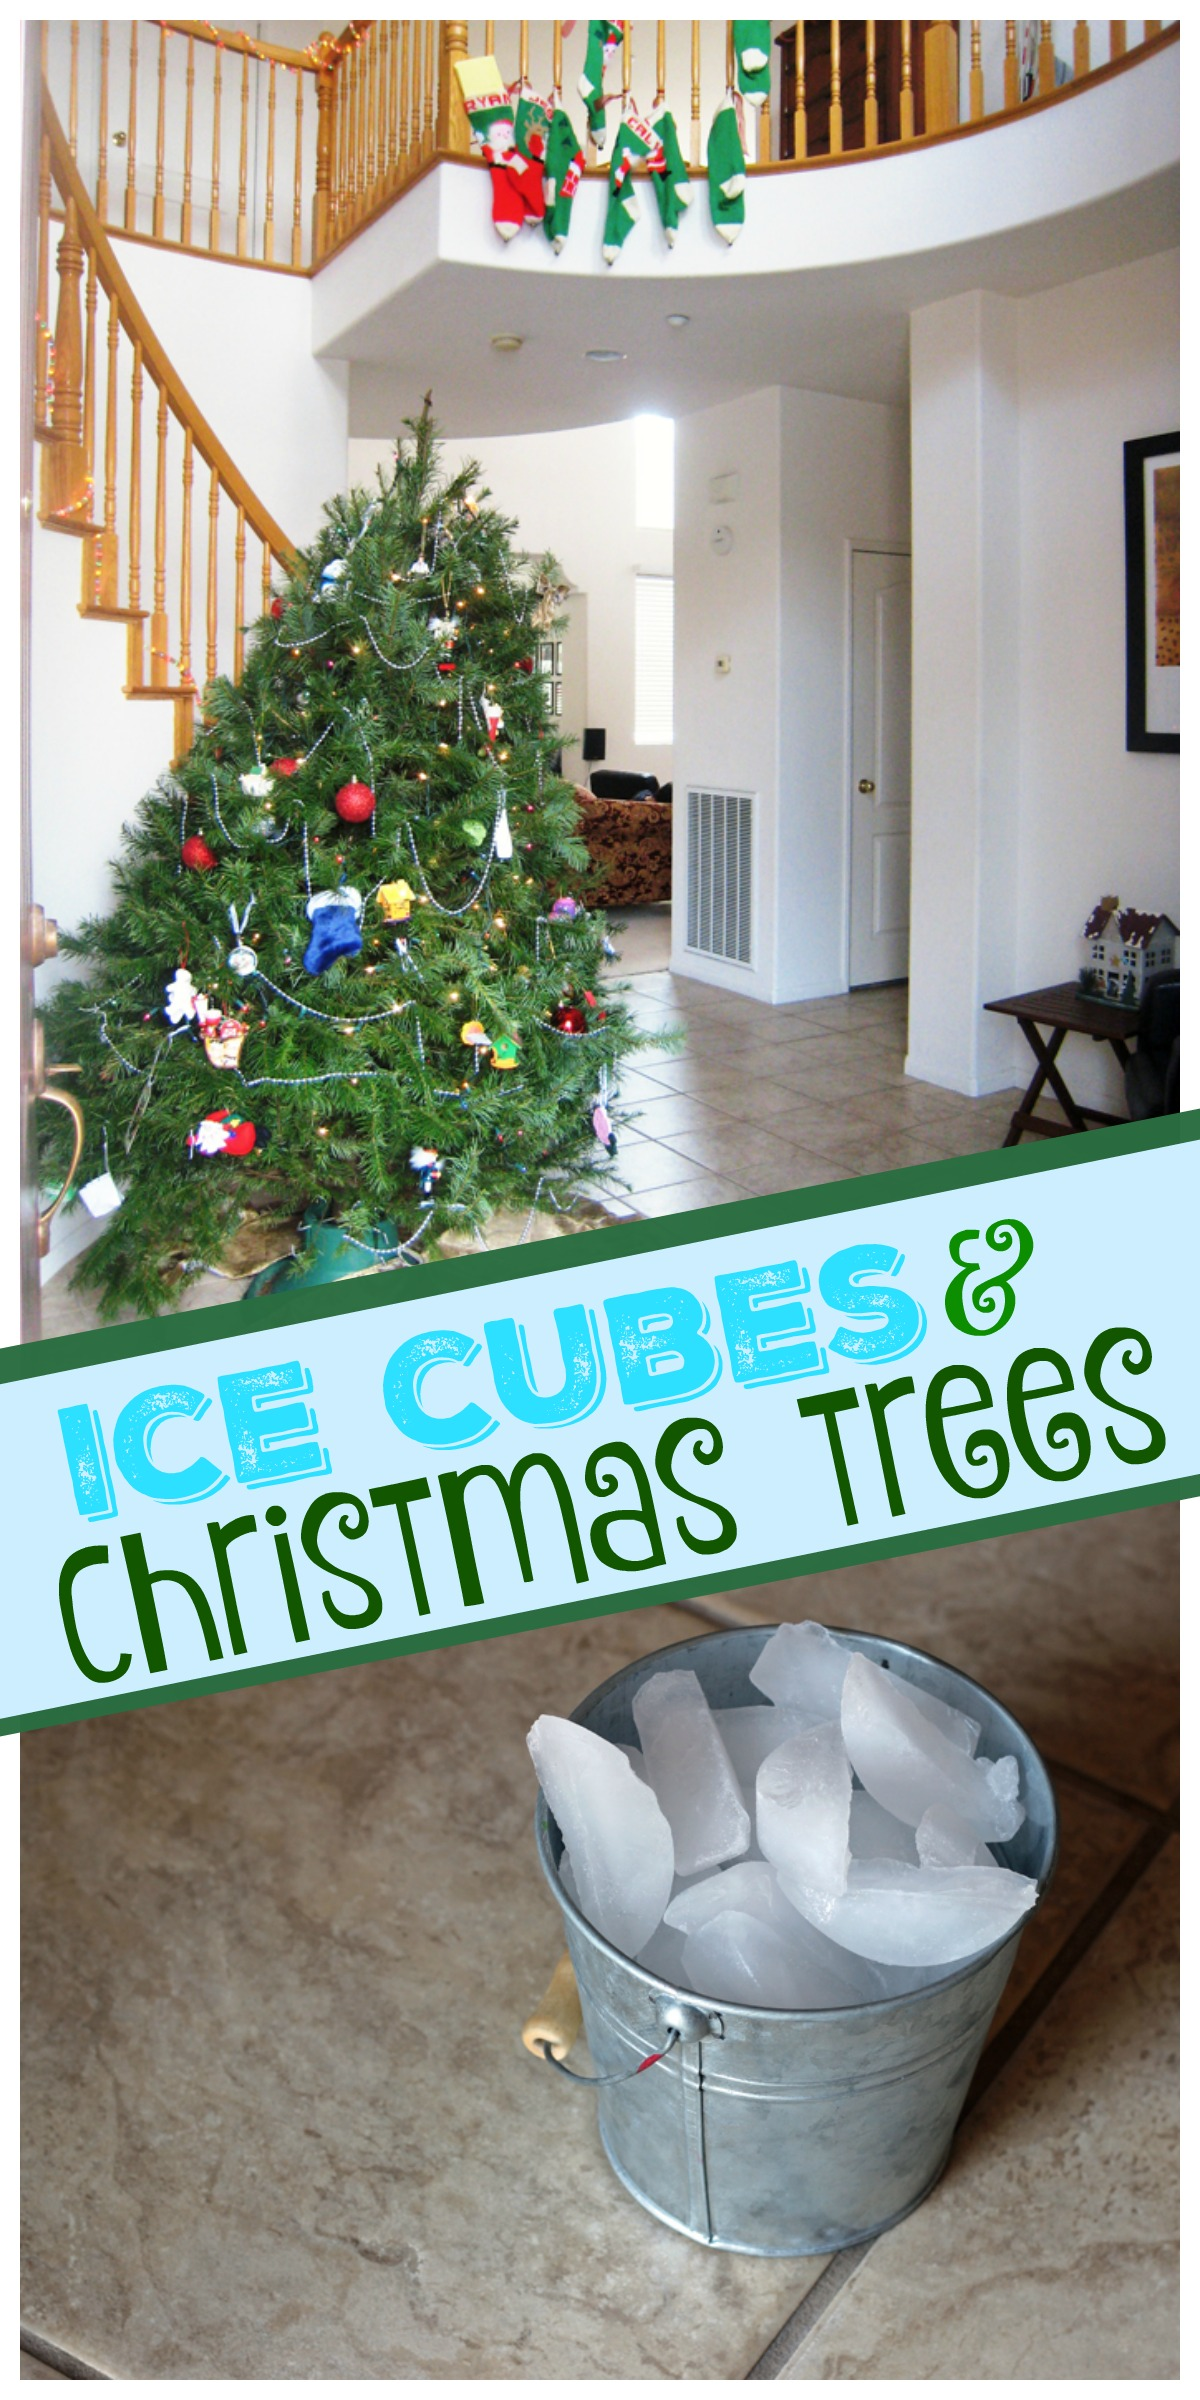 Feed Your Christmas Tree with Ice Cubes | Life as Mom - Let your toddler be the keeper of the tree this year. Feed your live Christmas trees with ice cubes!